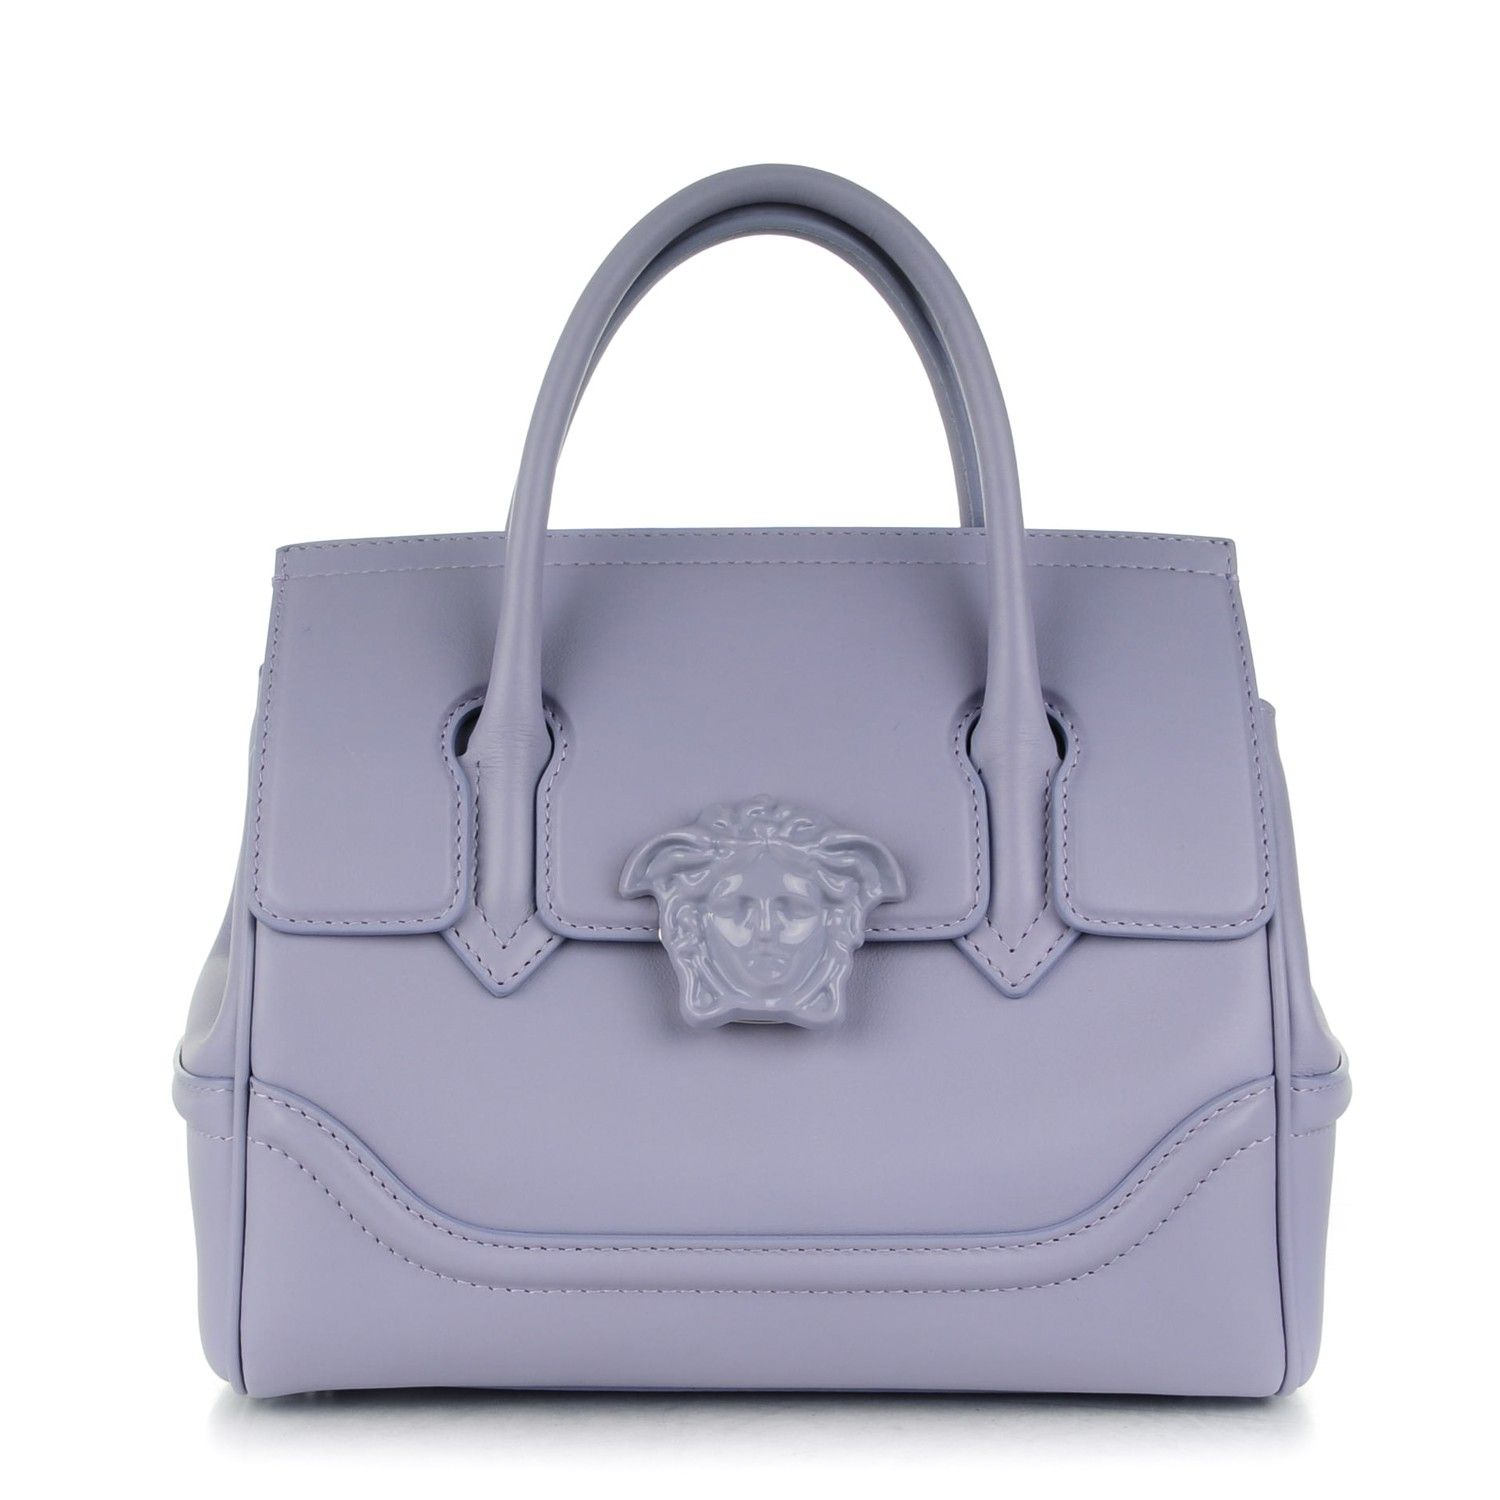 76f09c330a This is an authentic VERSACE Calfskin Medium Palazzo Empire Bag. This  stylish bag is crafted